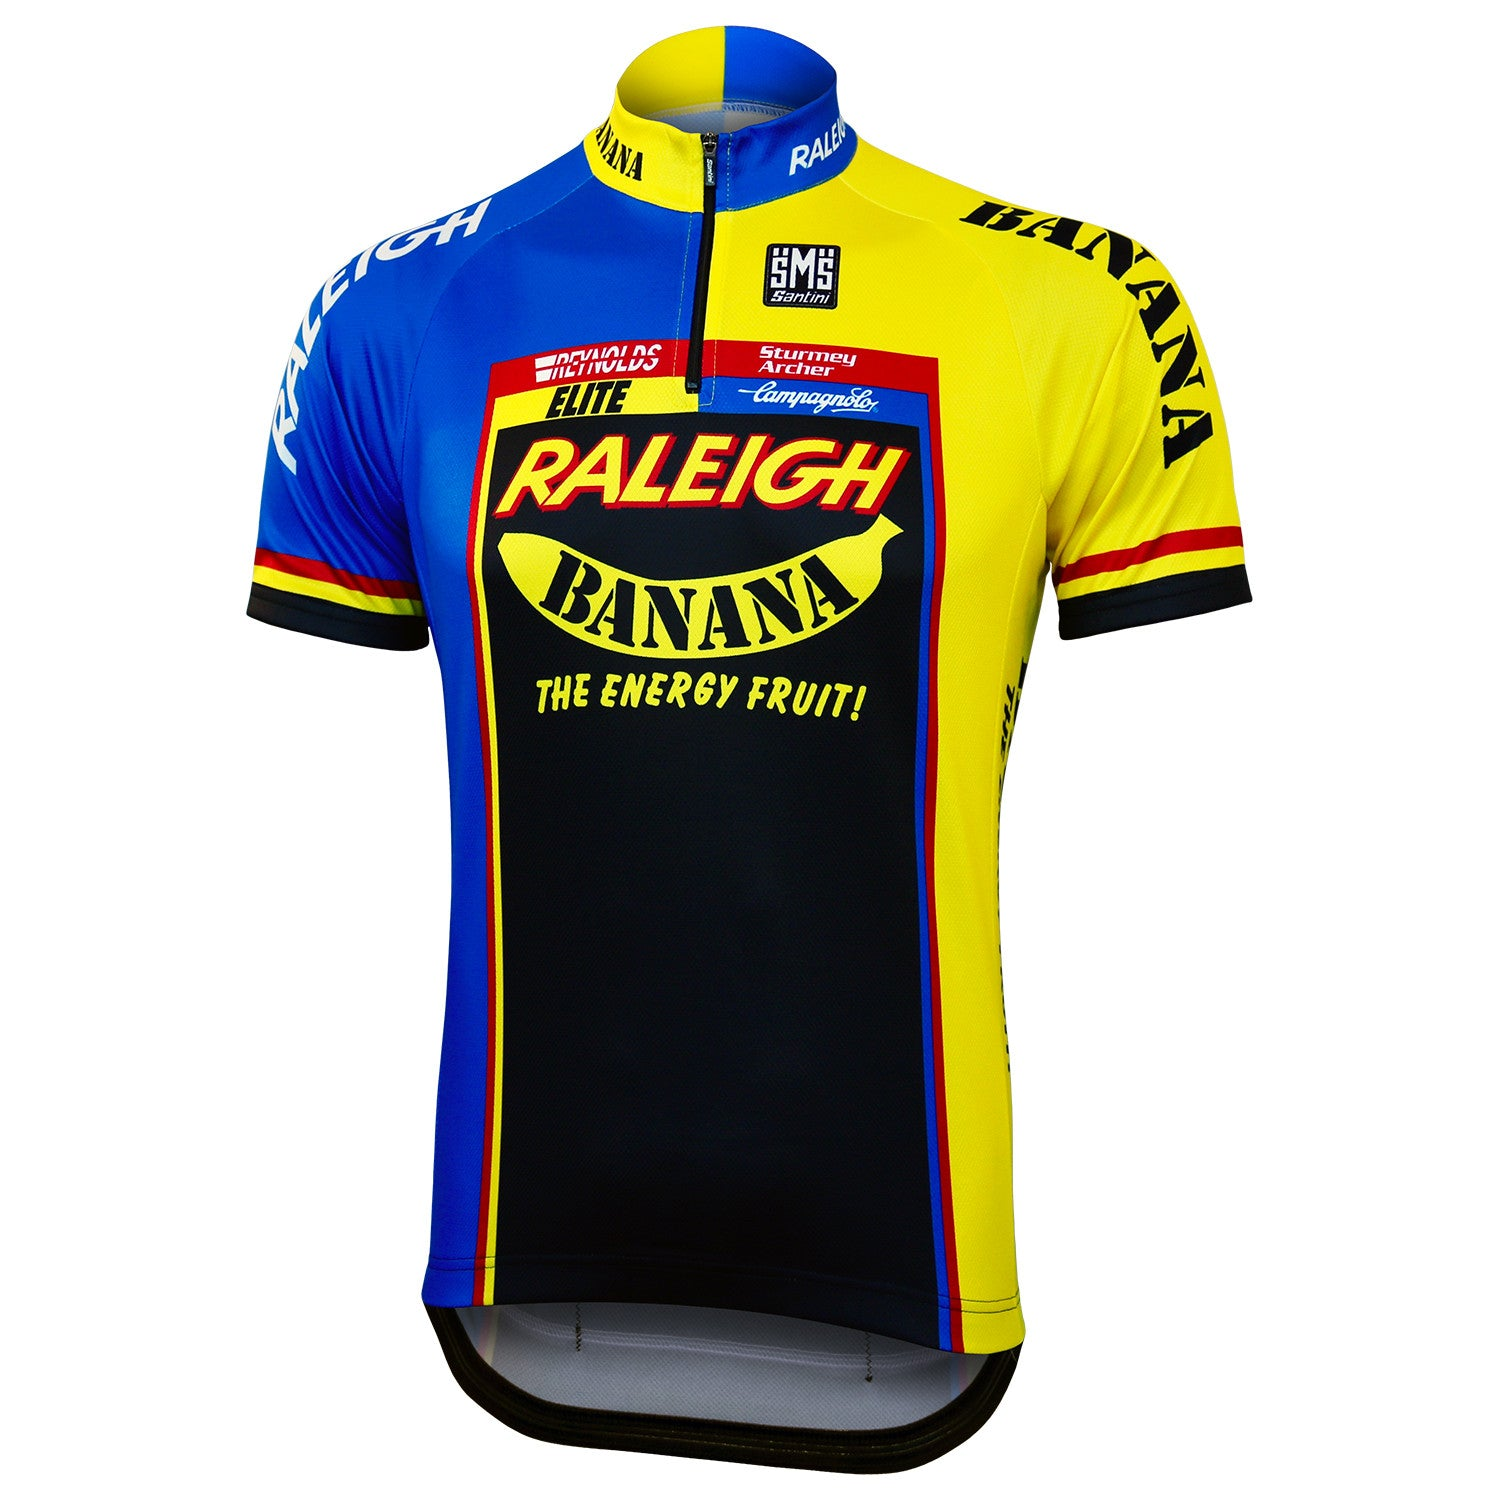 raleigh - Banana Retro Jersey Short Sleeve